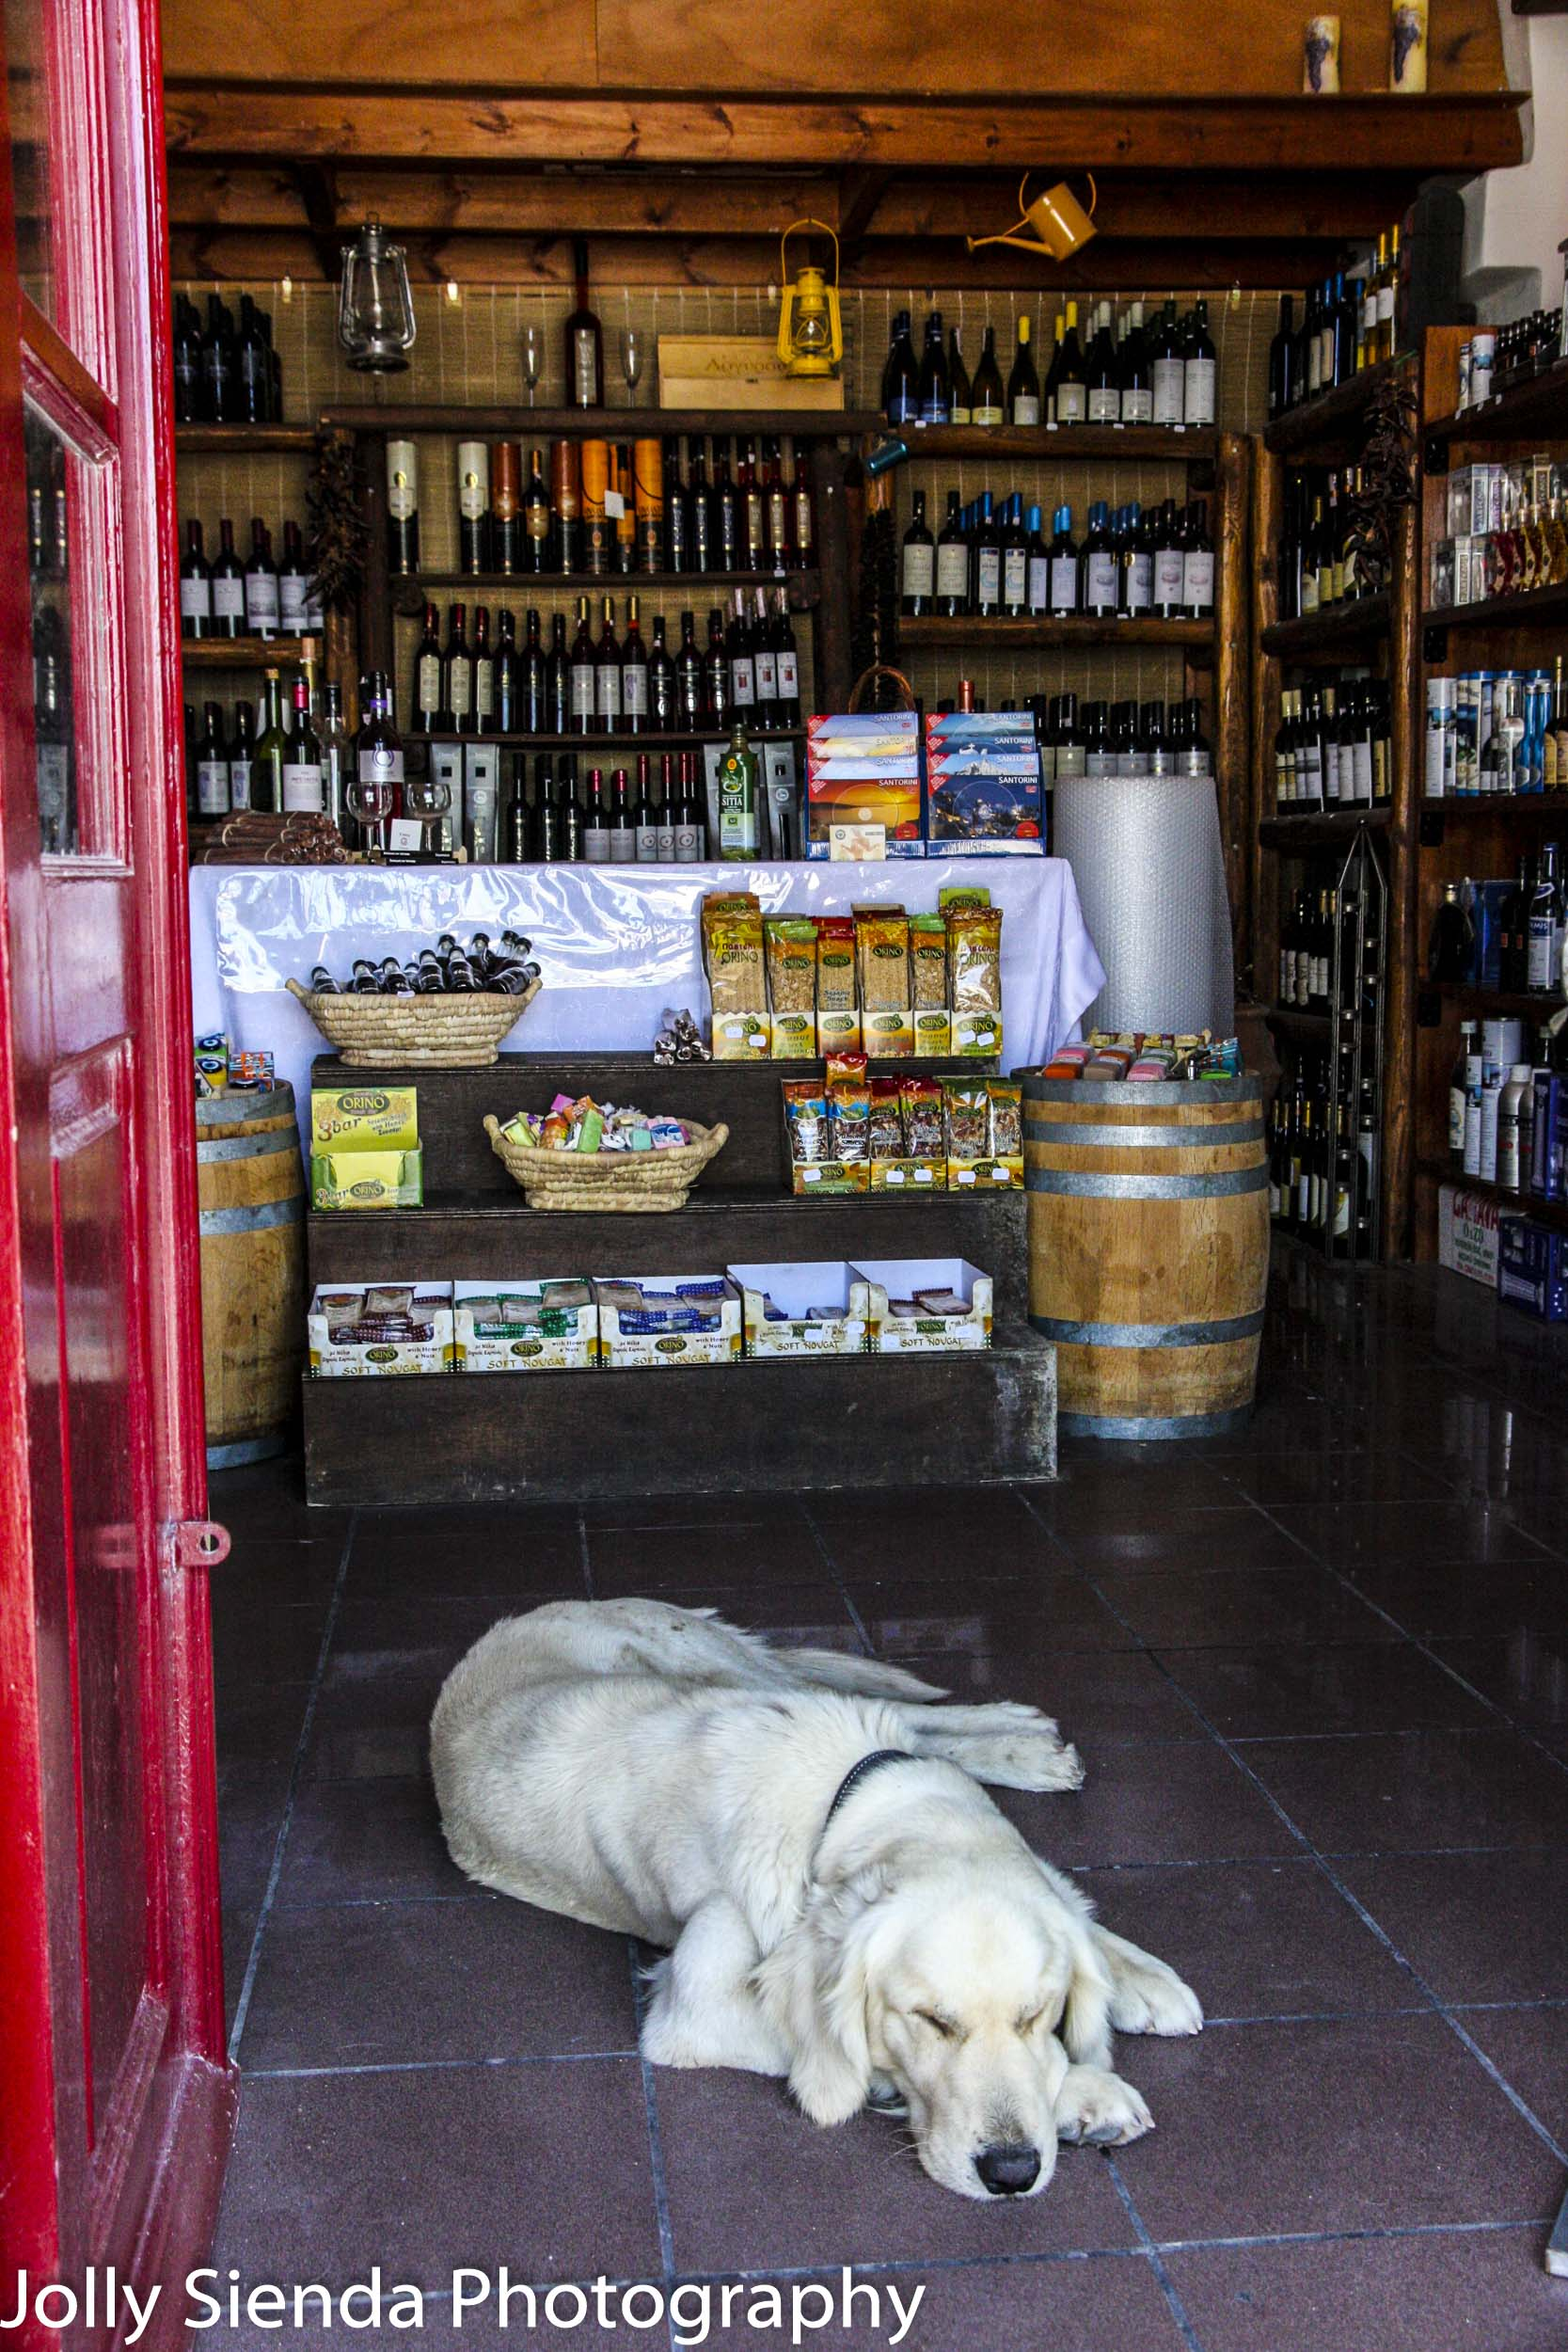 Sleeping dog lies on tile floor in a shop with a red door